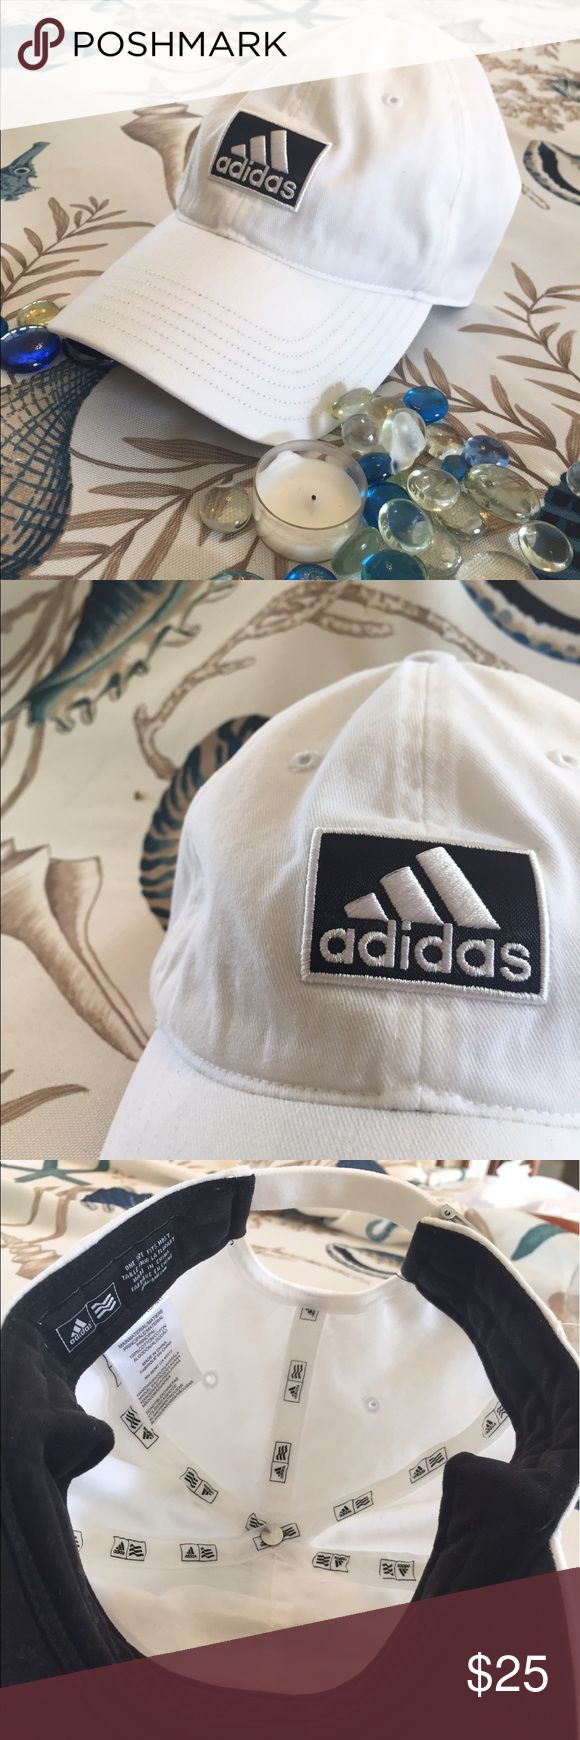 💯BRAND NEW, ALL ⚪️⚪️⚪️ ADIDAS HAT💯 BRAND NEW just doesn't have tags on it still ~ NEVER BEEN WORN ~ mint condition ~ Great addition for the prime time of summer and or any occasion year round ❤️⚪️⚫️⚪️⚫️❤️ ADIDAS HAT w/ a metal adjustable head strap -- no trade but flexible on pricing -- adidas Accessories Hats